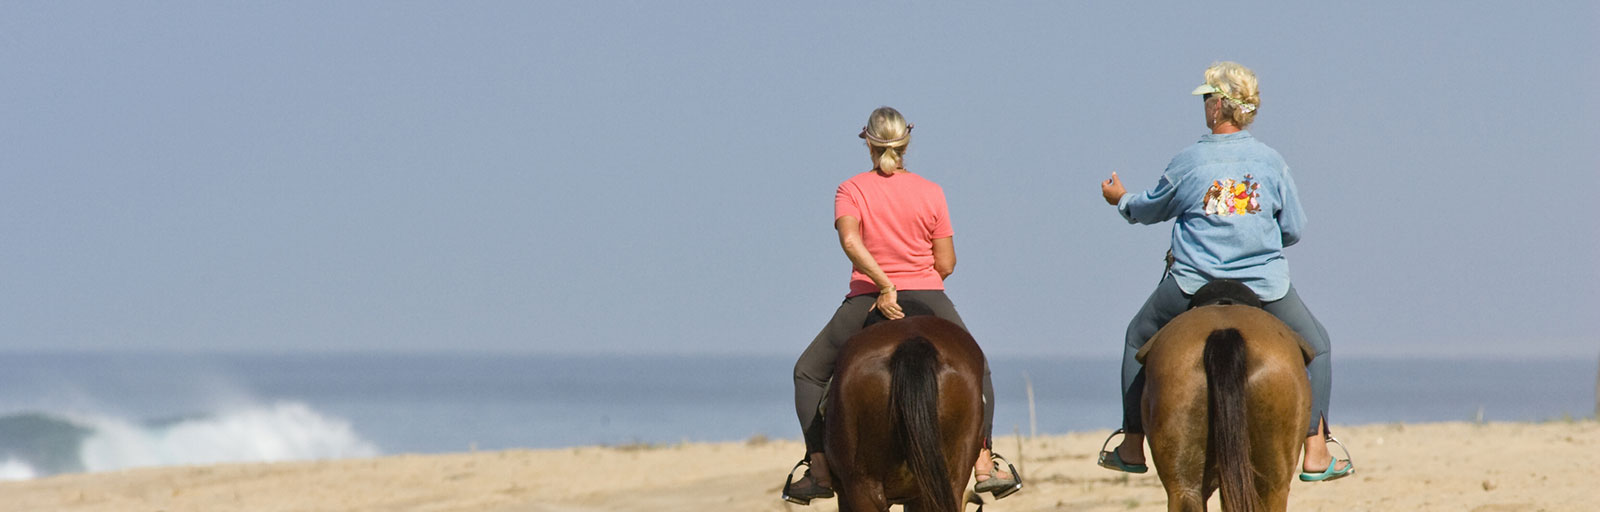 Horseback Riding & Yoga Retreat in Mexico: Beach Ride with Waves